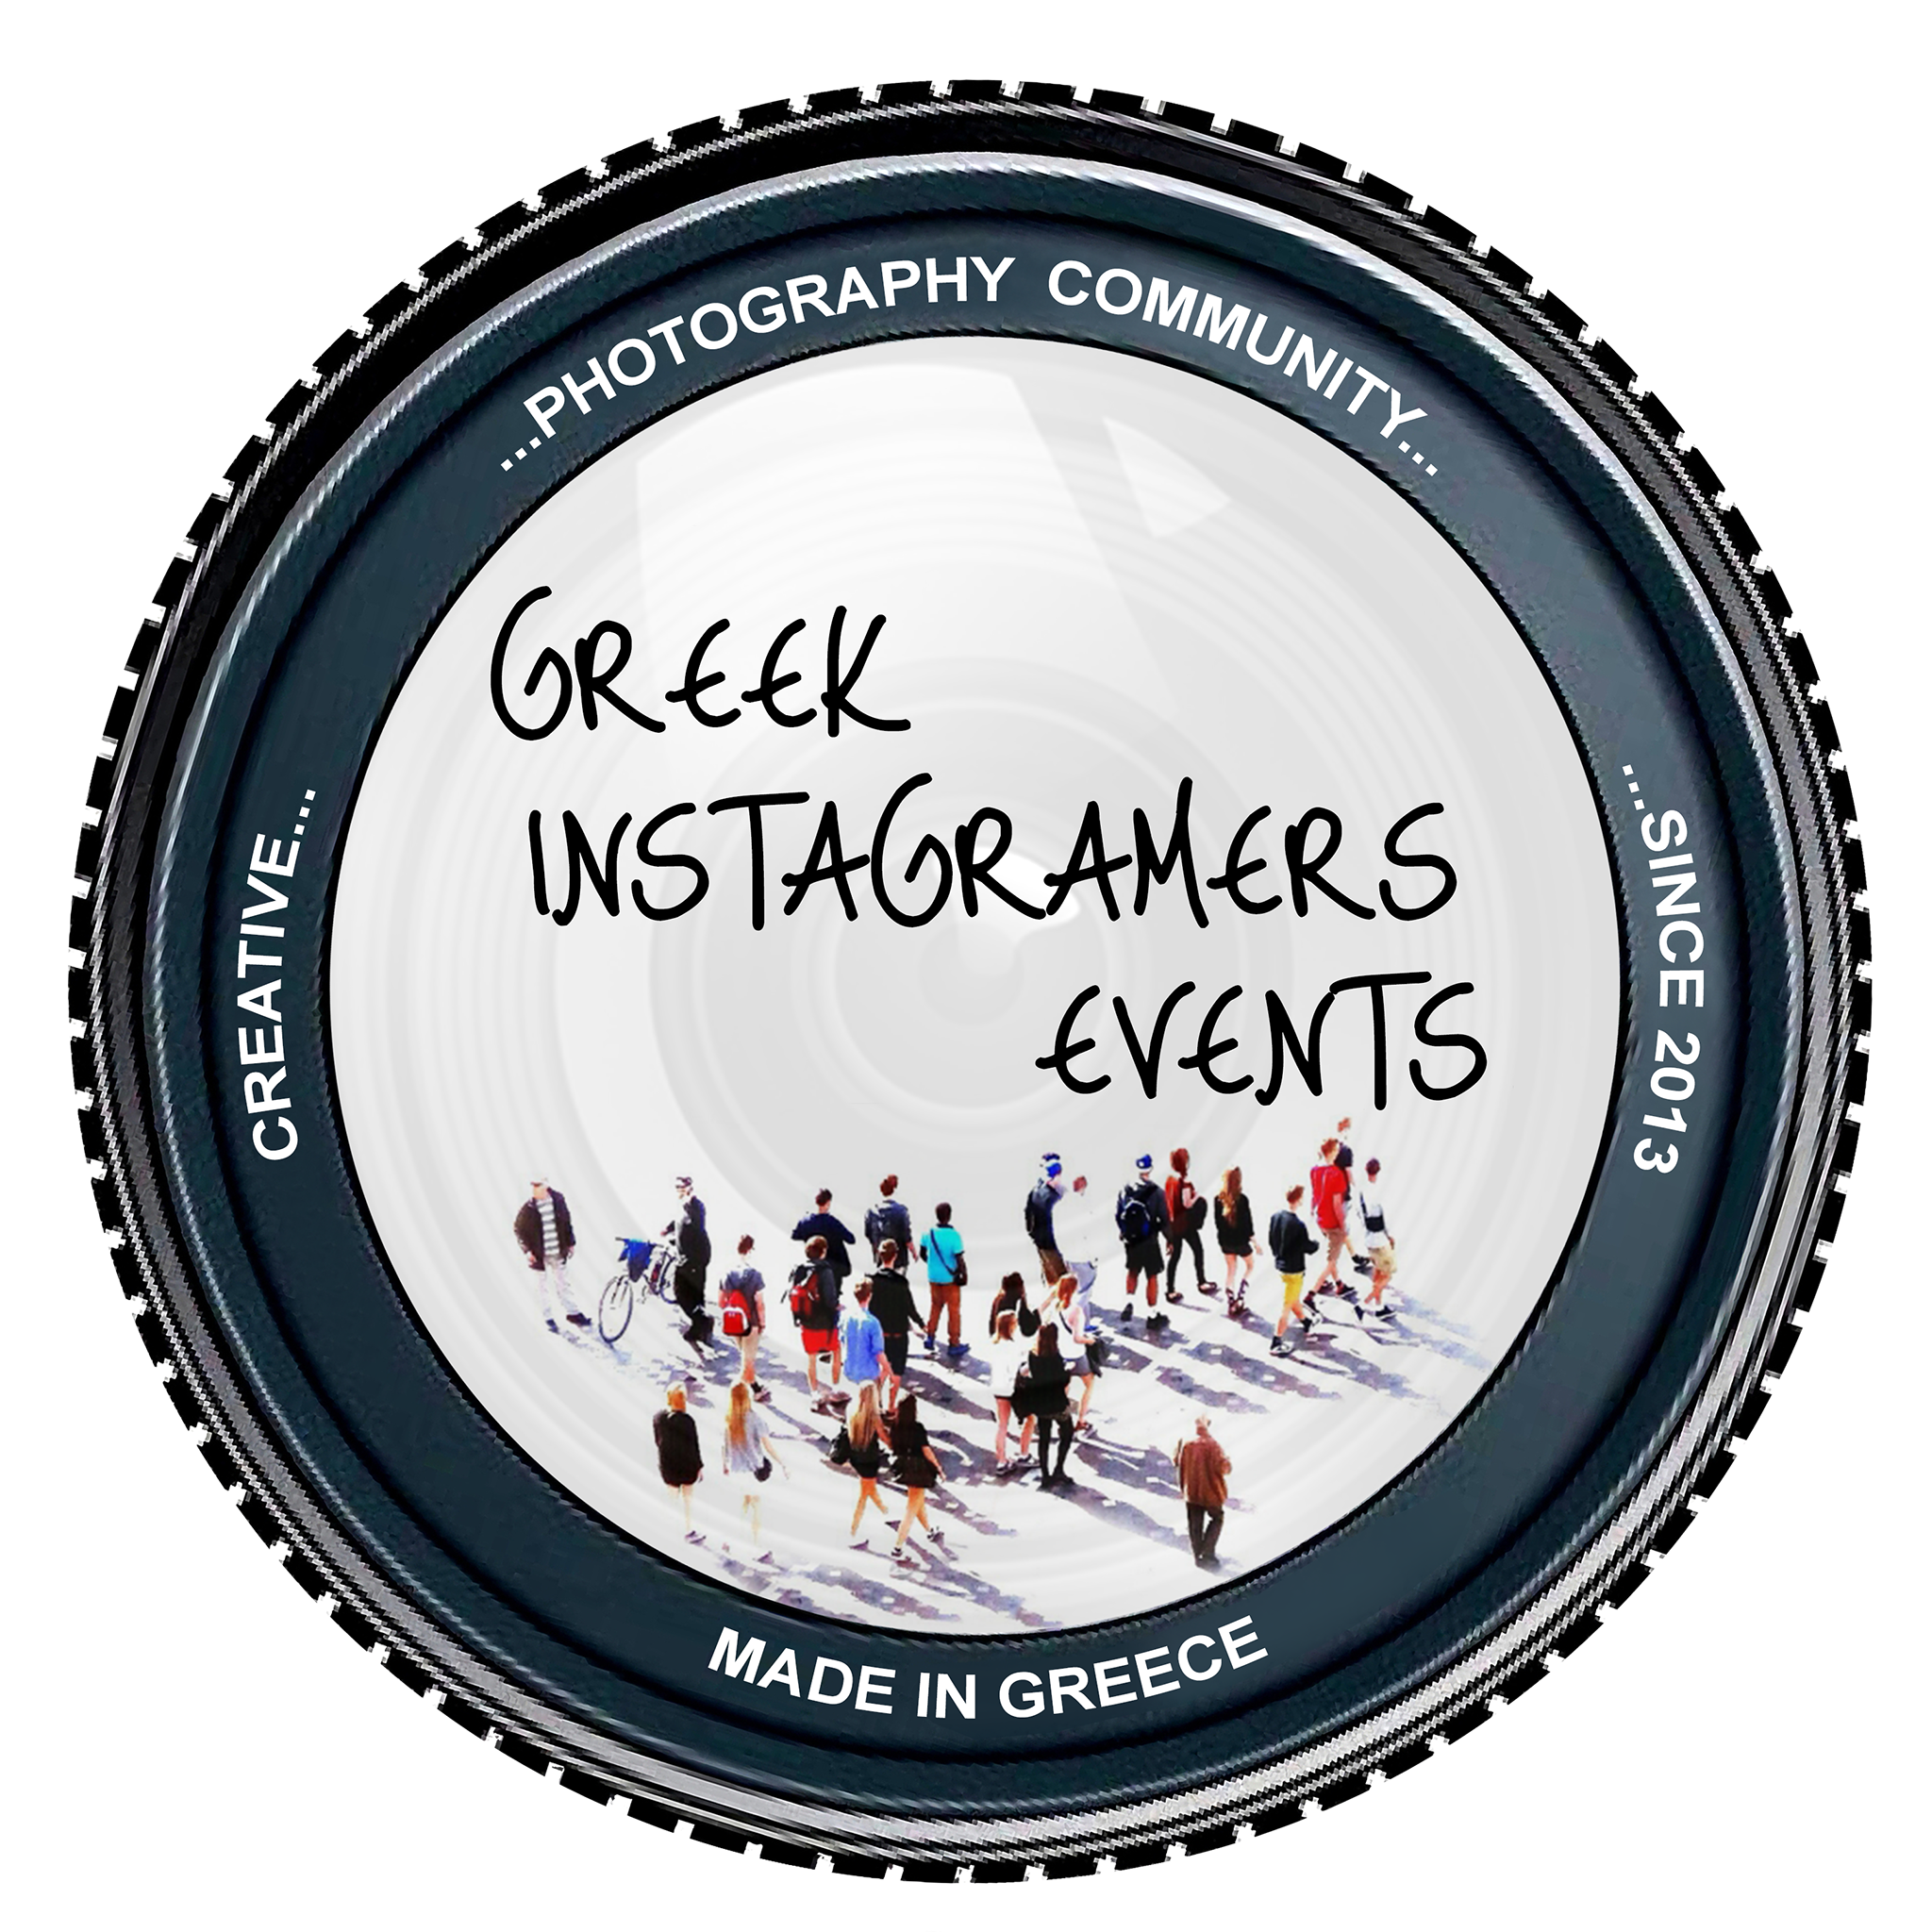 Greek-Instagramers-Events-logo.png